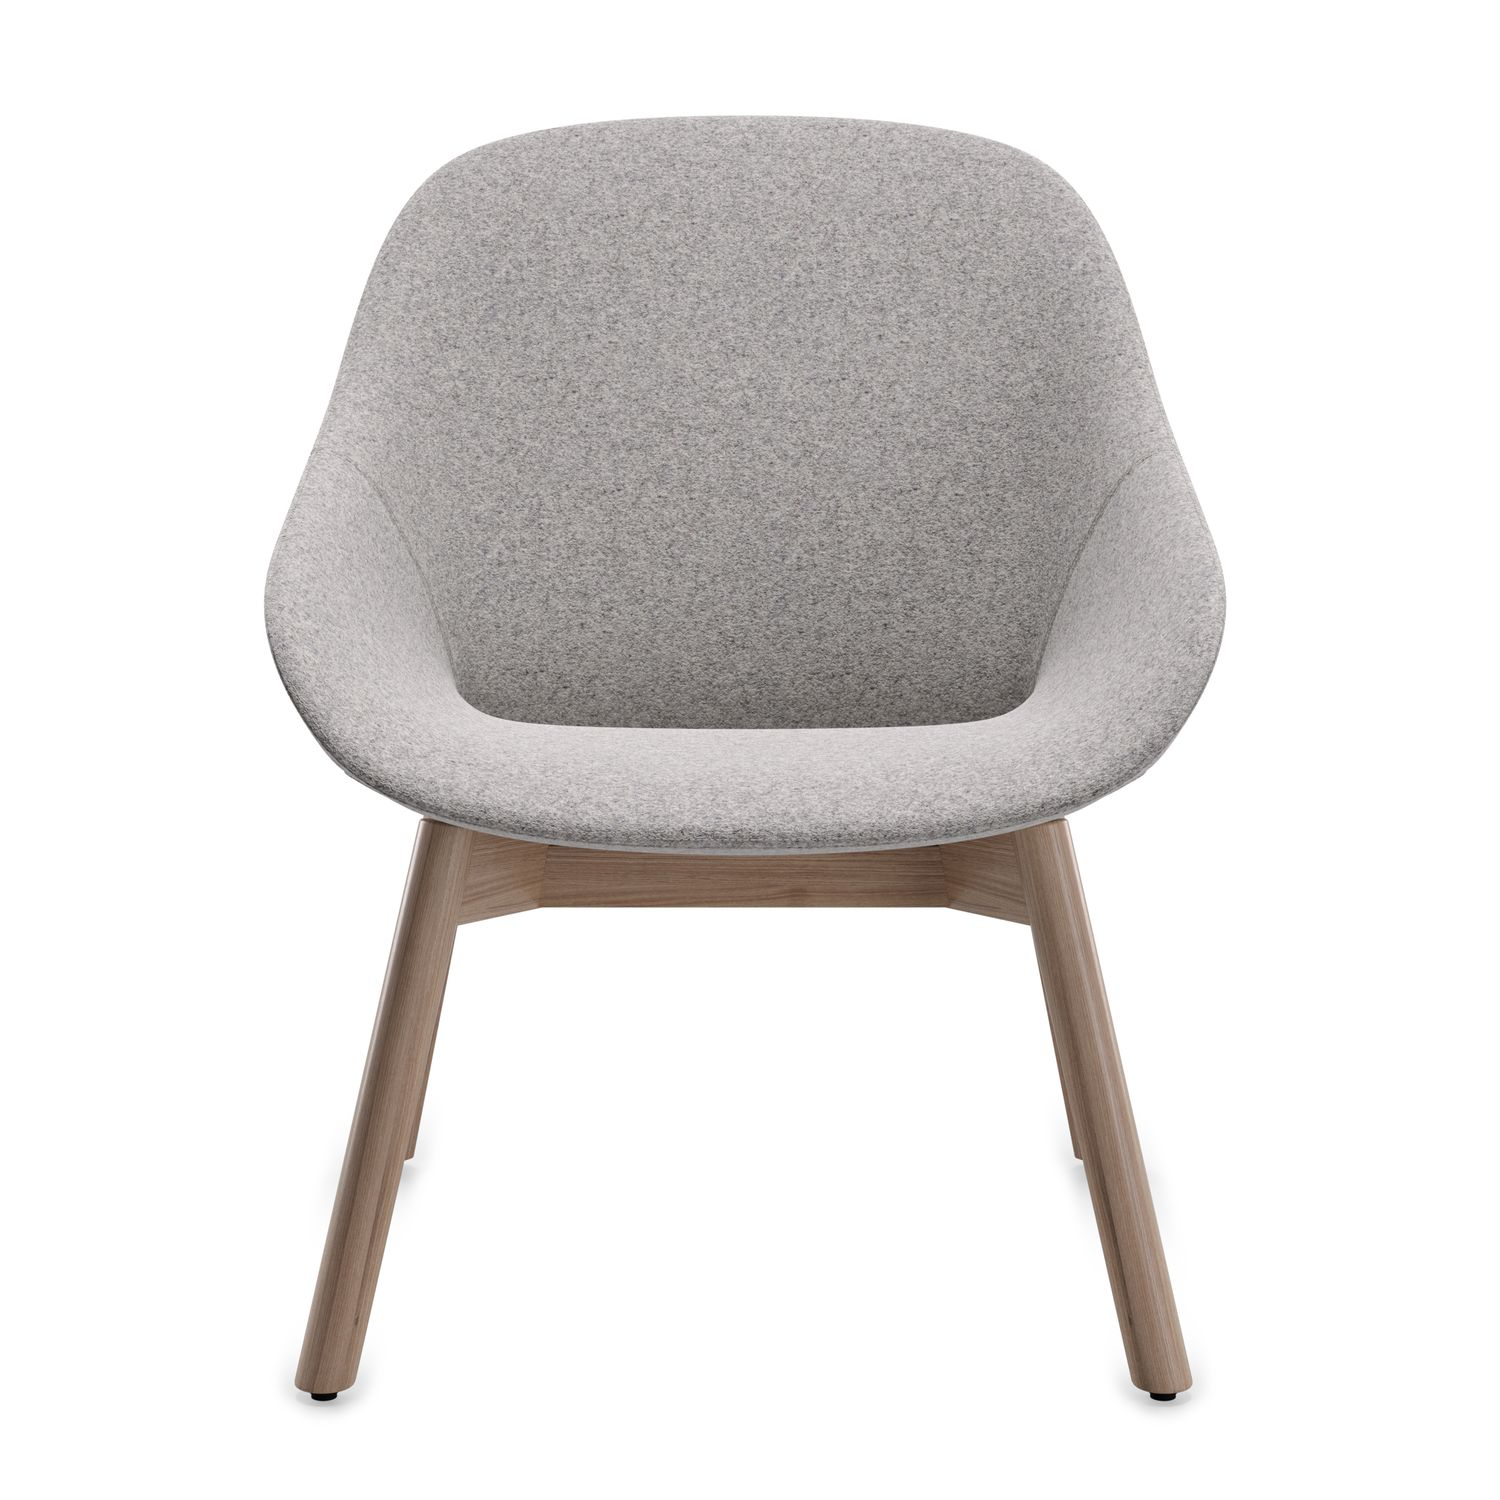 A Versatile And Stylish Chair Program